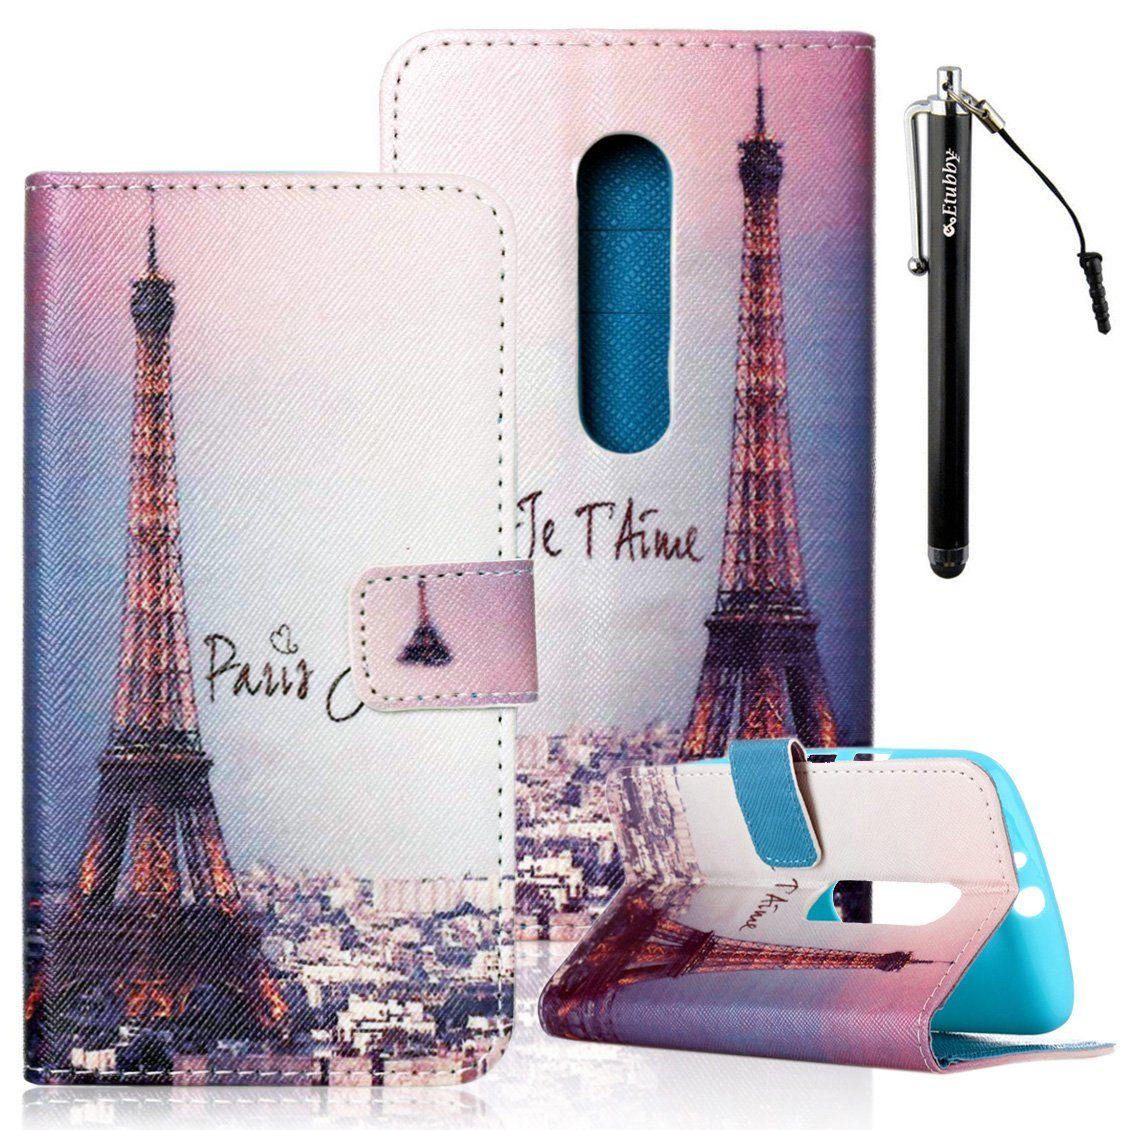 Moto G3 Case, Motorola Moto G (3rd Gen) Case, Etubby [Stand Feature] Premium PU Leather Wallet Flip Protective Case with Magnetic Clasp & Card Slots for Motorola Moto G (3rd Gen, 2015) - Eiffel Tower